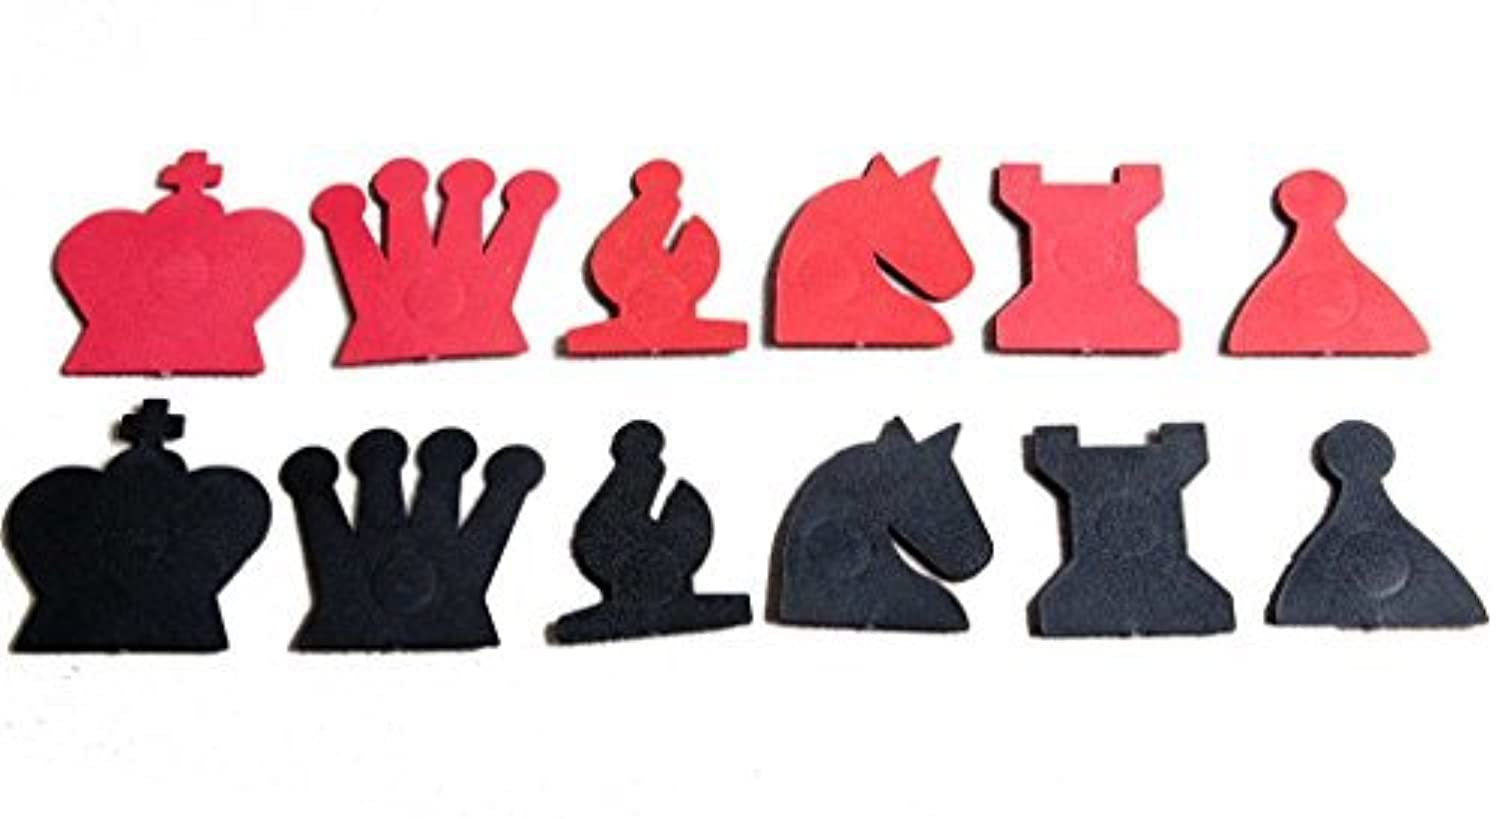 Extra Pieces for your 28 Magnetic-Style Chess Demonstration Set by